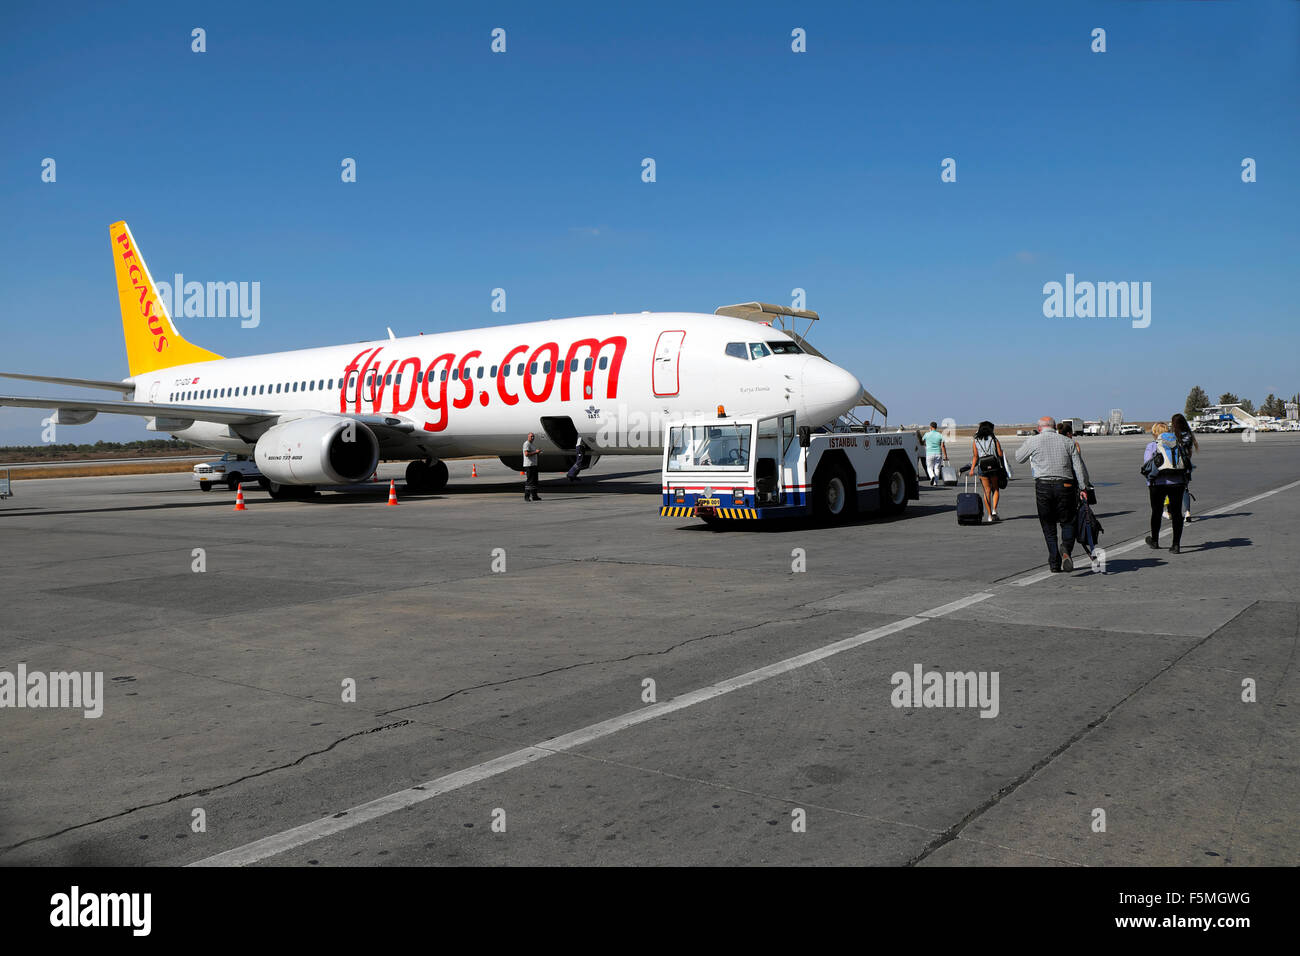 Passengers walking on the tarmac boarding a Pegasus airplane at Ercan airport in Nicosia North Cyprus  KATHY DEWITT - Stock Image